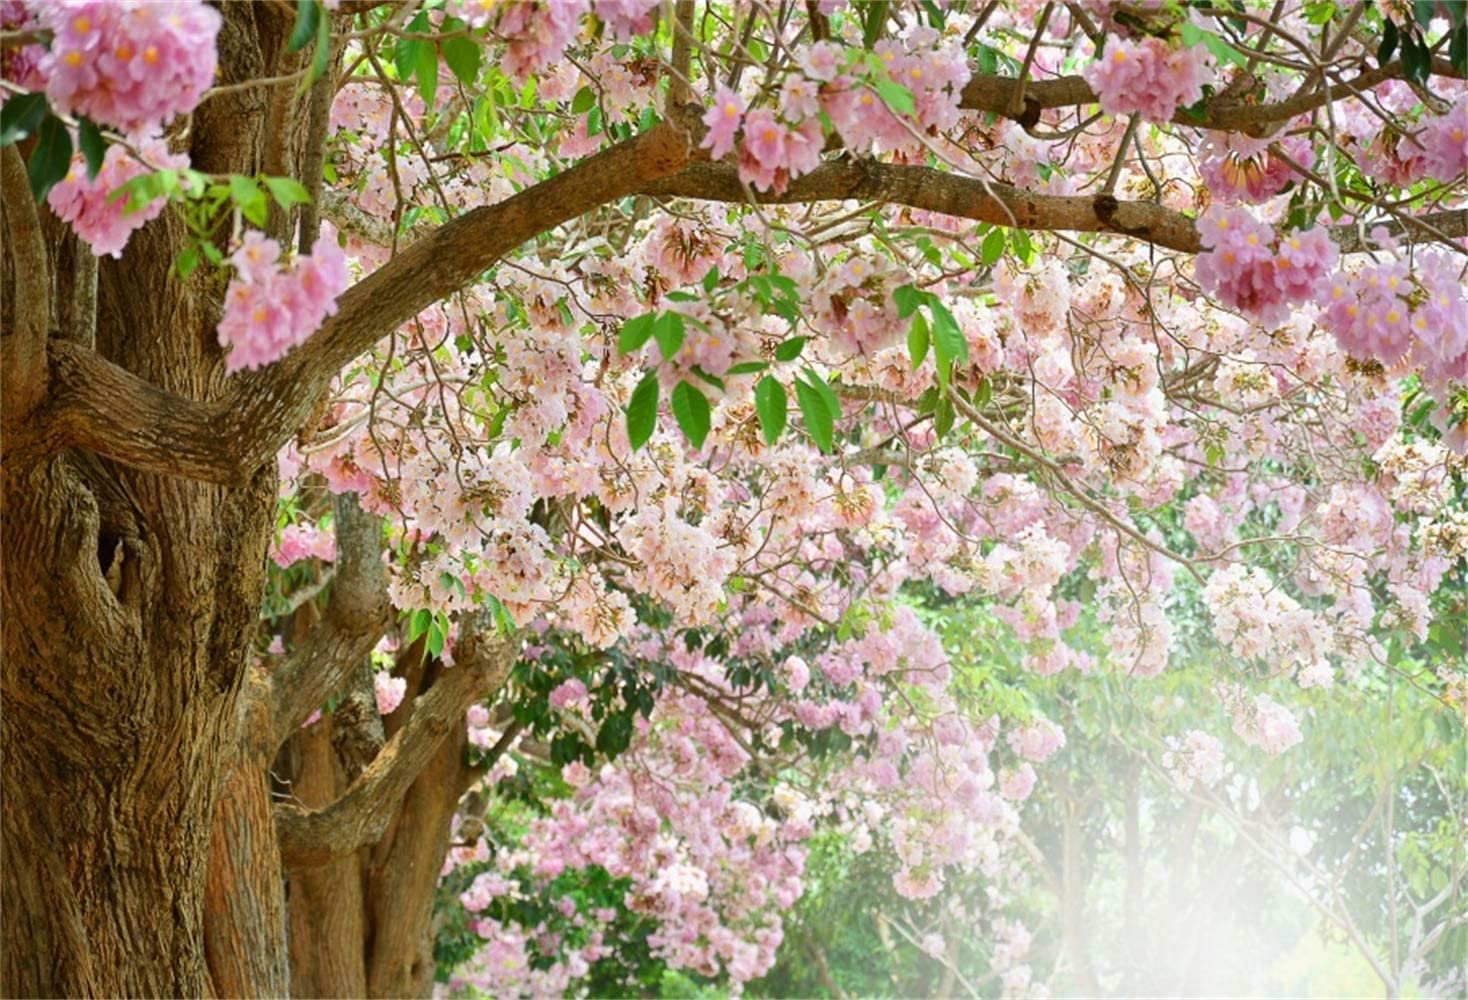 Pink Flowers Blooming Trees Backdrop 10x6.5ft Polyester Romantic Floral Trees Green Leaves Hazy Fog Floral Path Background Bridal Shower Bride Groom Portrait Shoot Banner Wedding Photo Booth